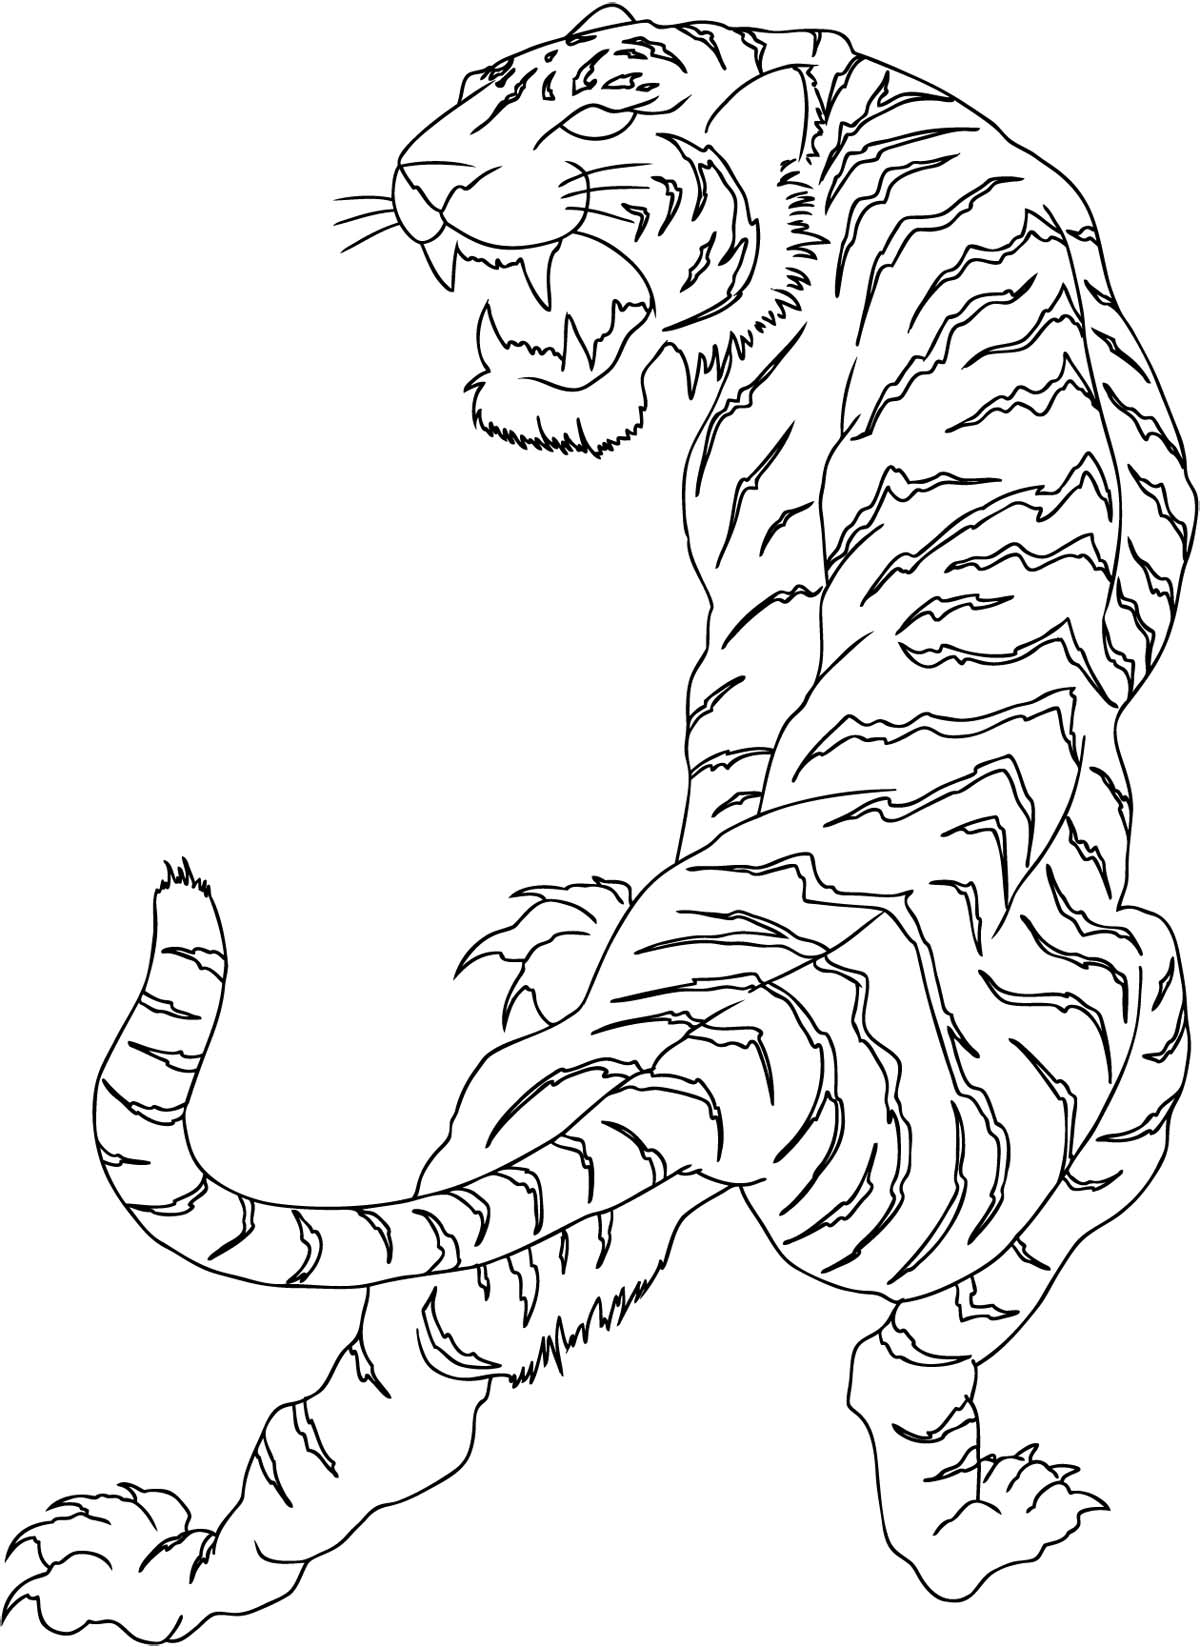 outline chinese tiger tattoo design sample